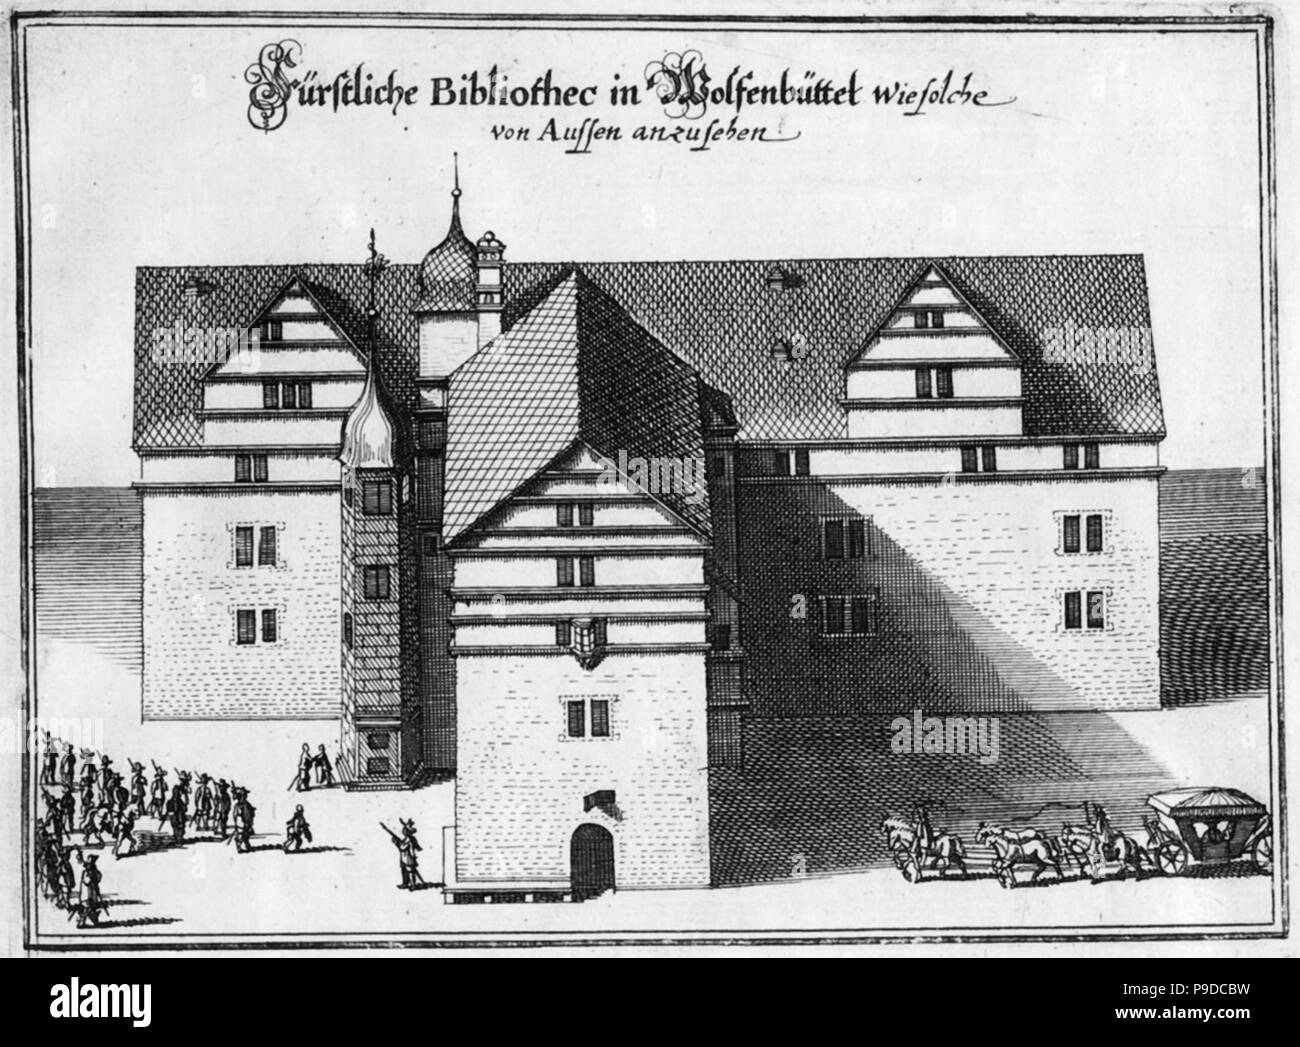 Herzog August Library in Wolfenbüttel. Museum: PRIVATE COLLECTION. Stock Photo